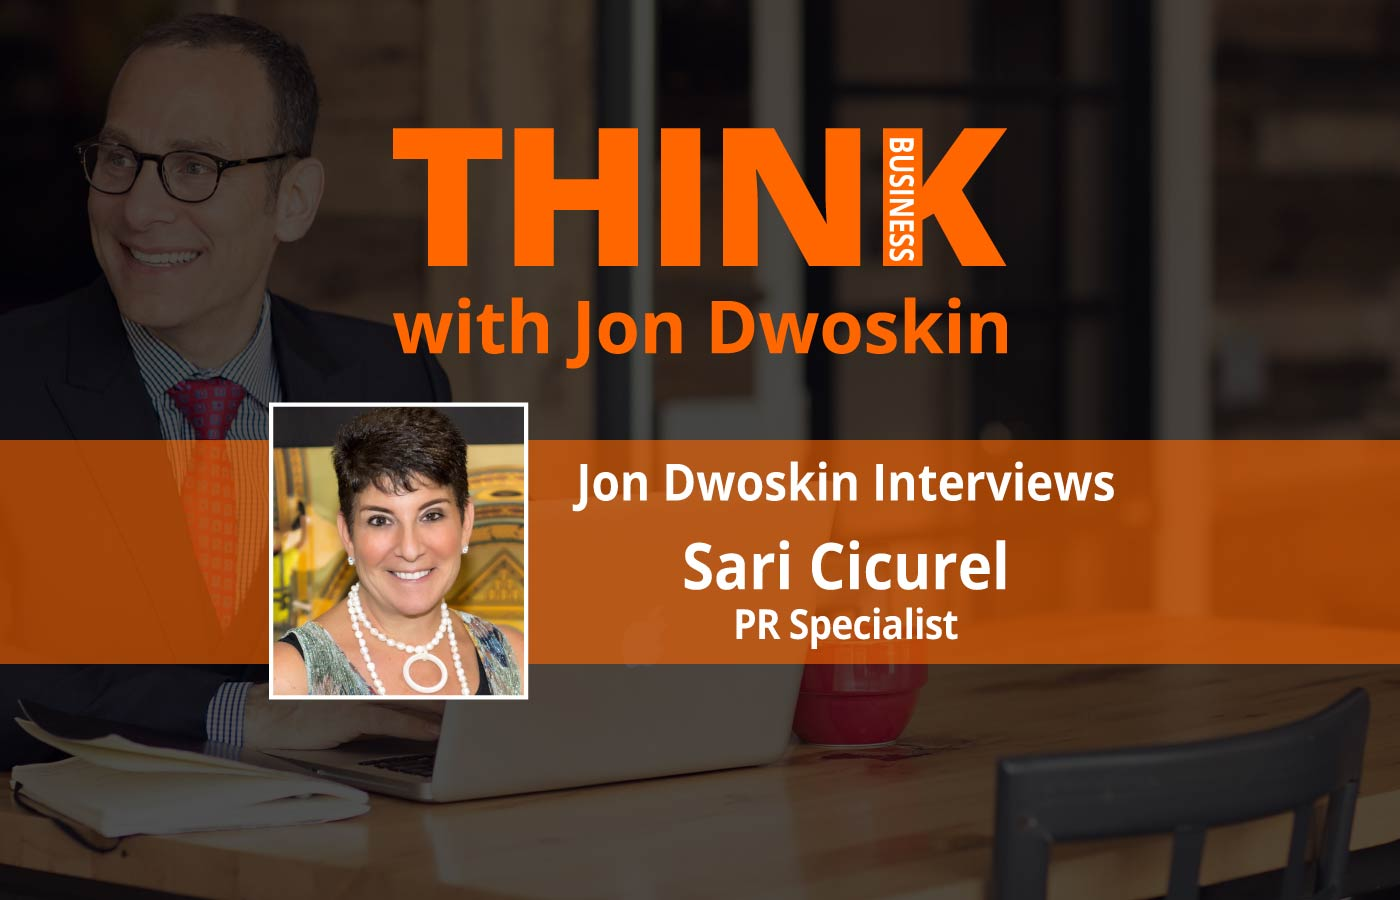 THINK Business Podcast: Jon Dwoskin Interviews Sari M. Cicurel